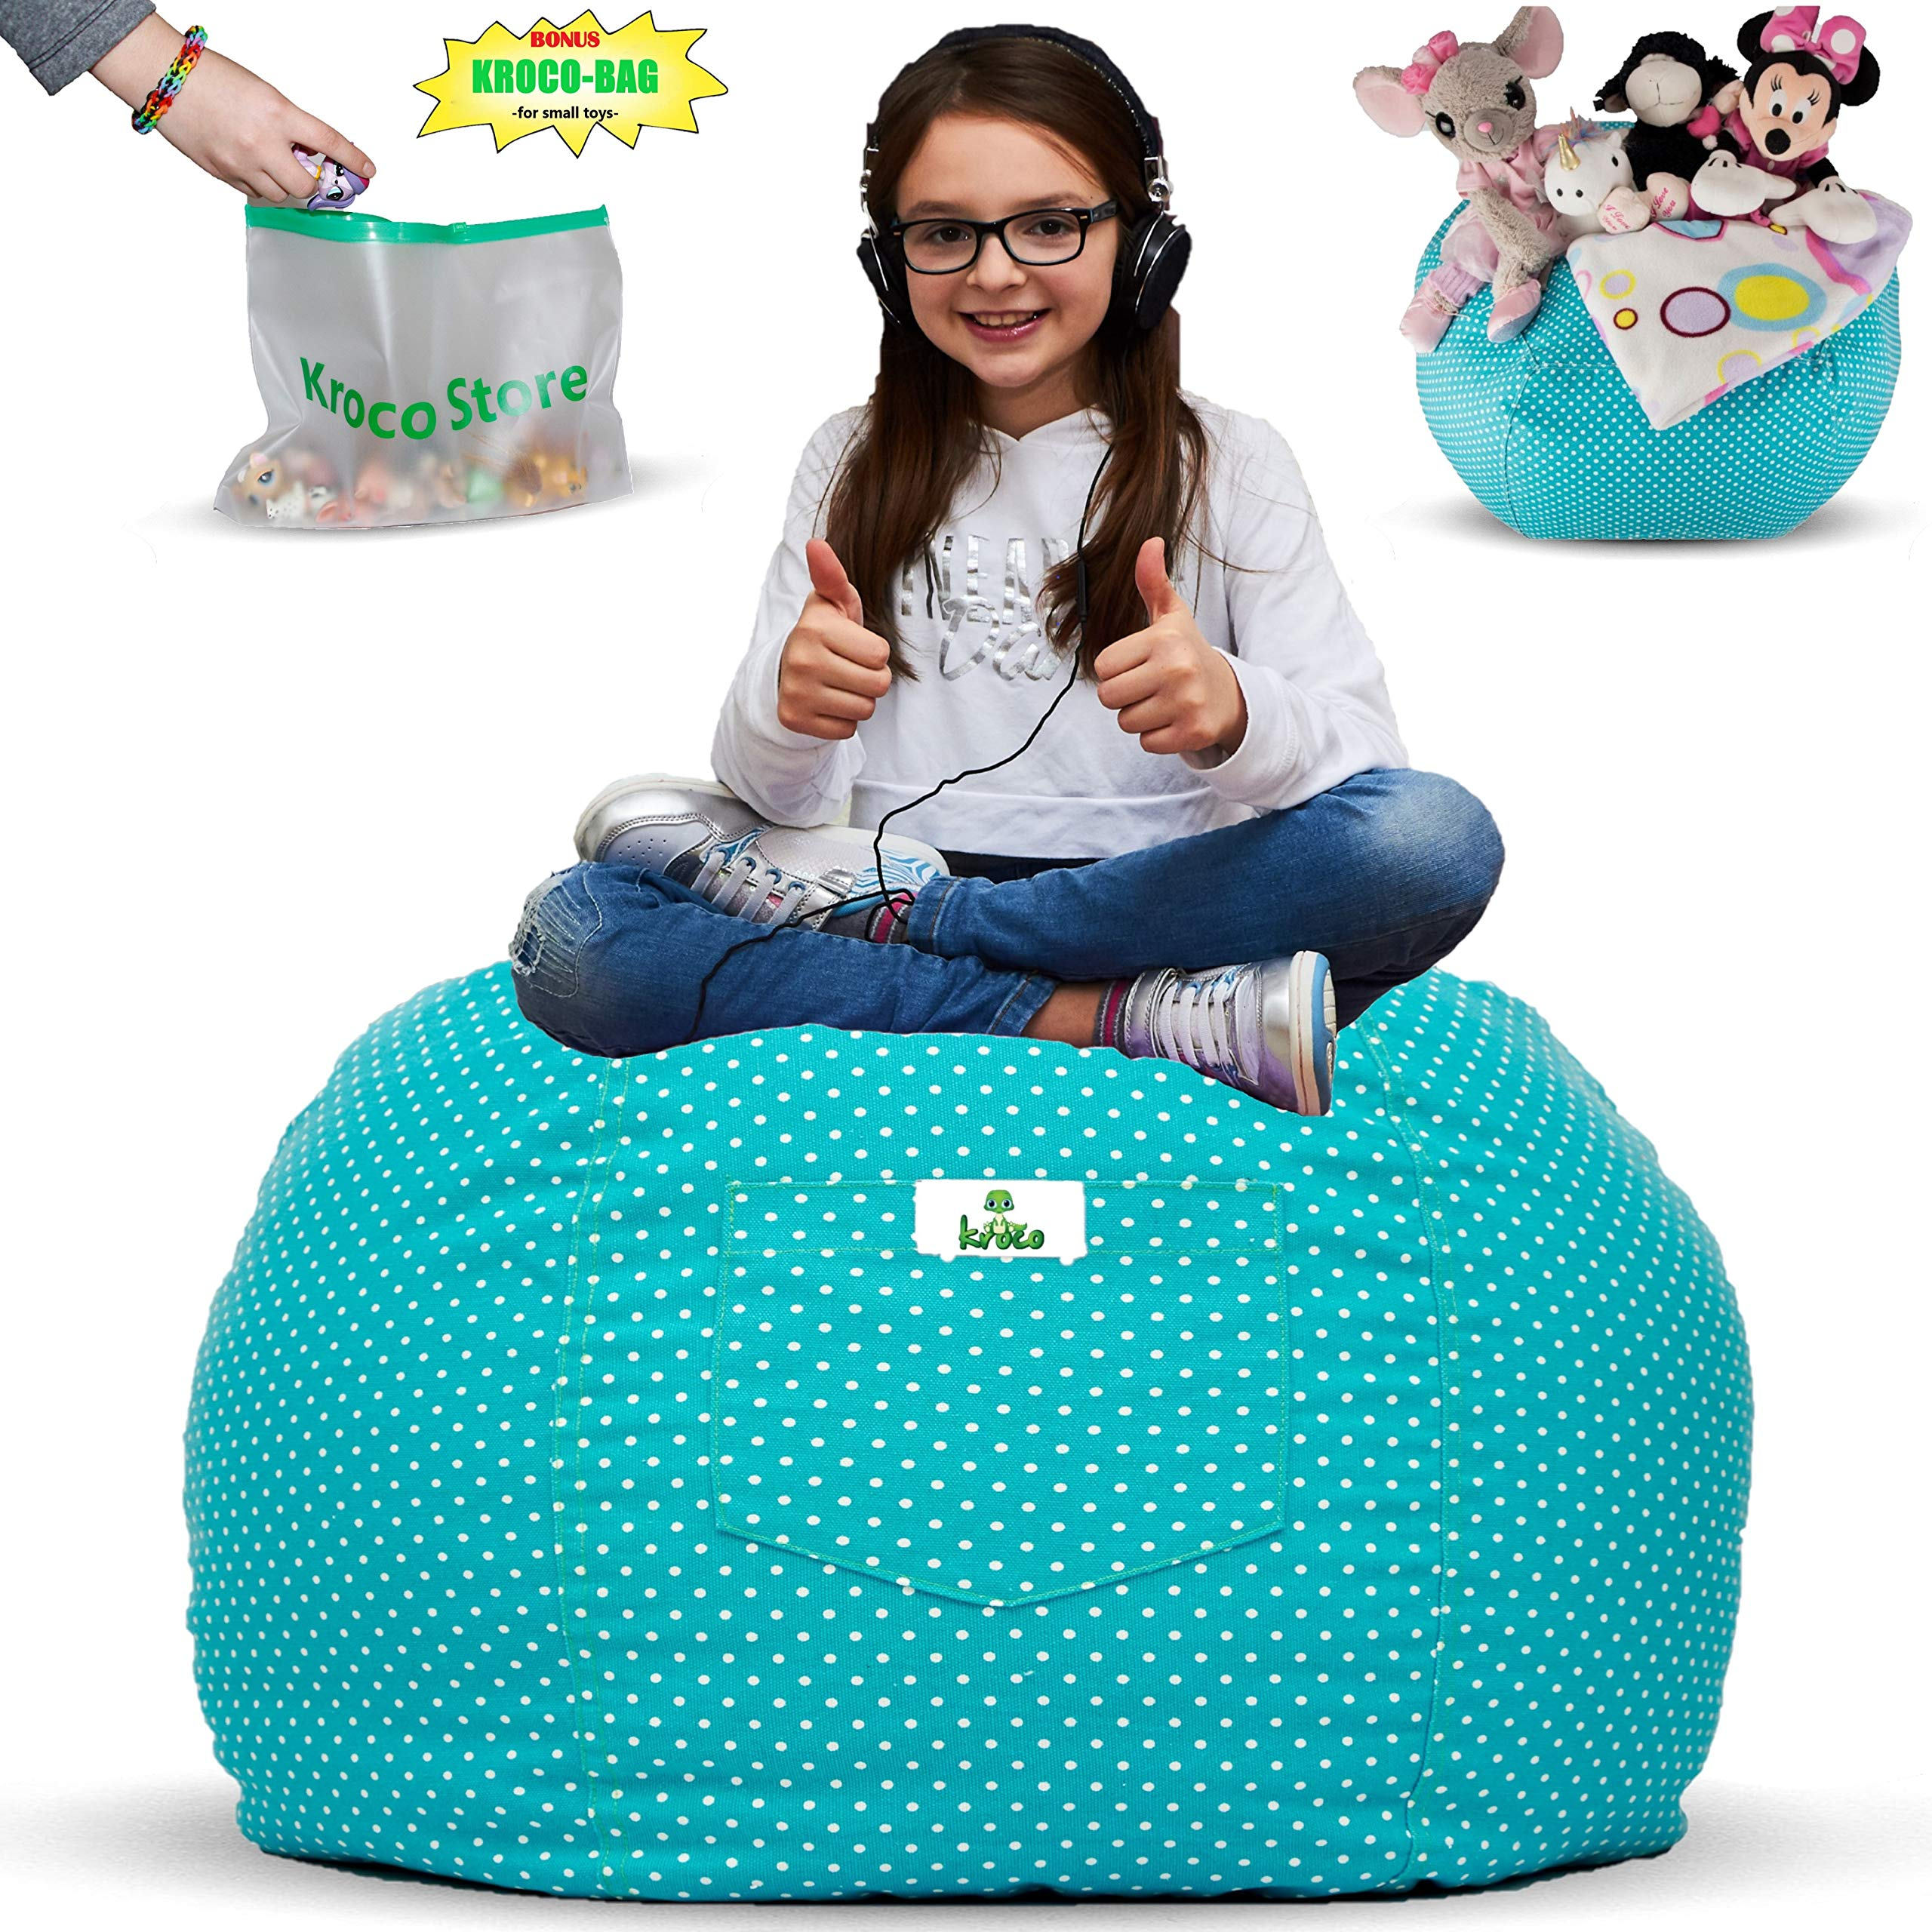 Kroco Stuffed Animal Storage Bean Bag Chair for Kids Room | Stuffie Toy Storage Beanbag Covers for Girls & Boys | Stuff Toys Organizer Seat Holder | Original Bag Extra Large - 38'' Teal by Kroco